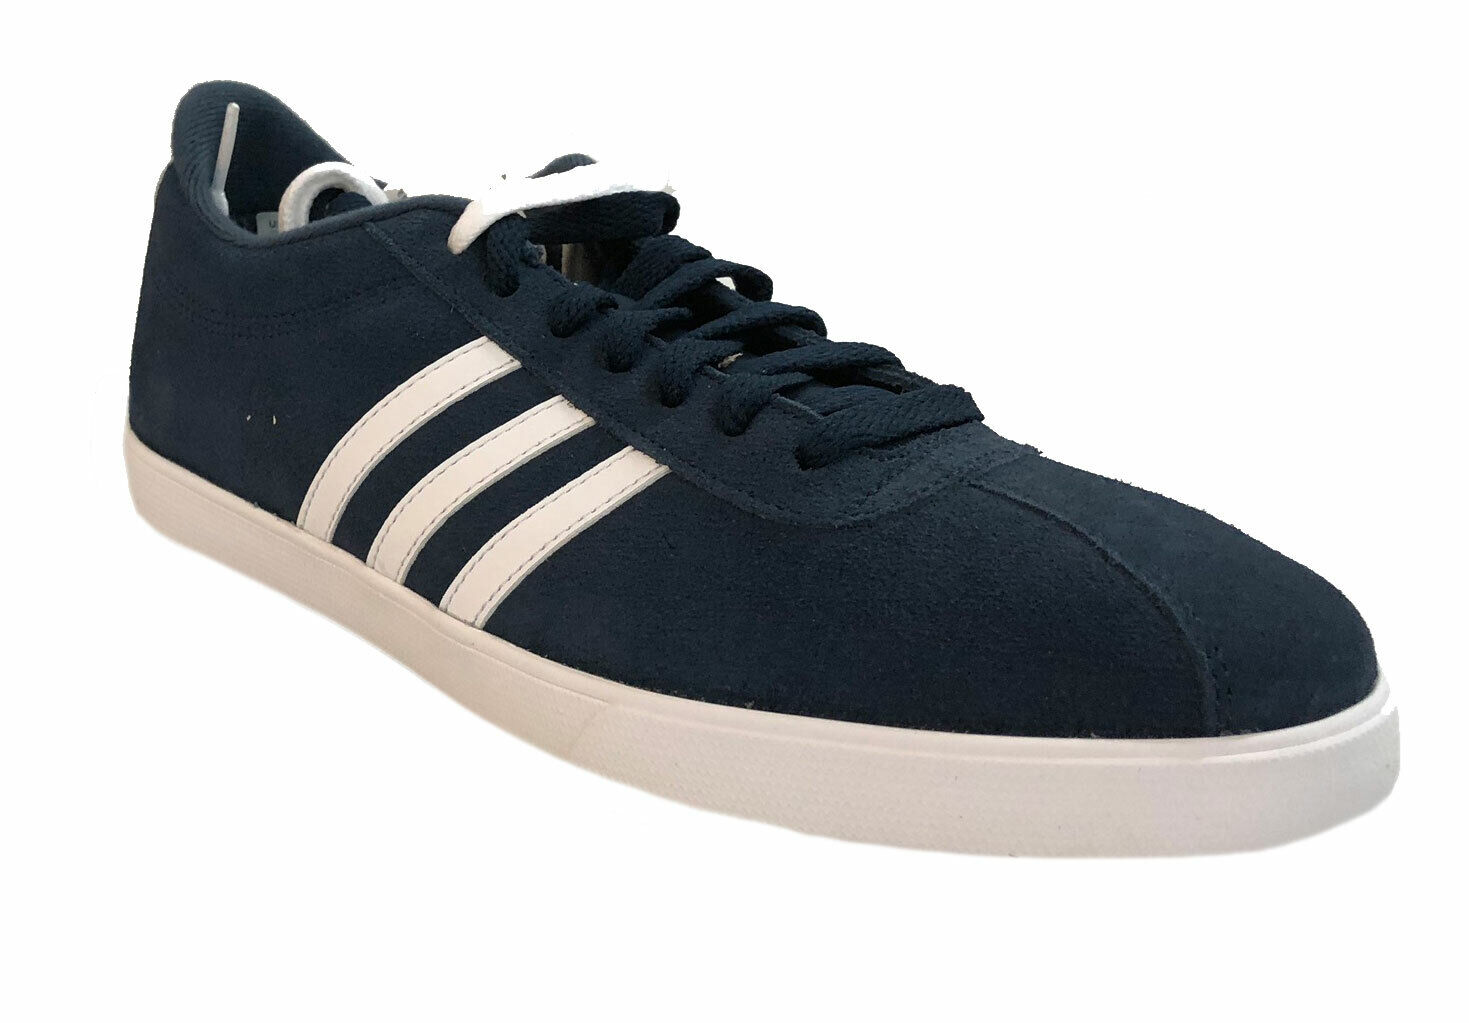 Adidas Women's Neo Cloudfoam Courtset Fashion Shoes Navy